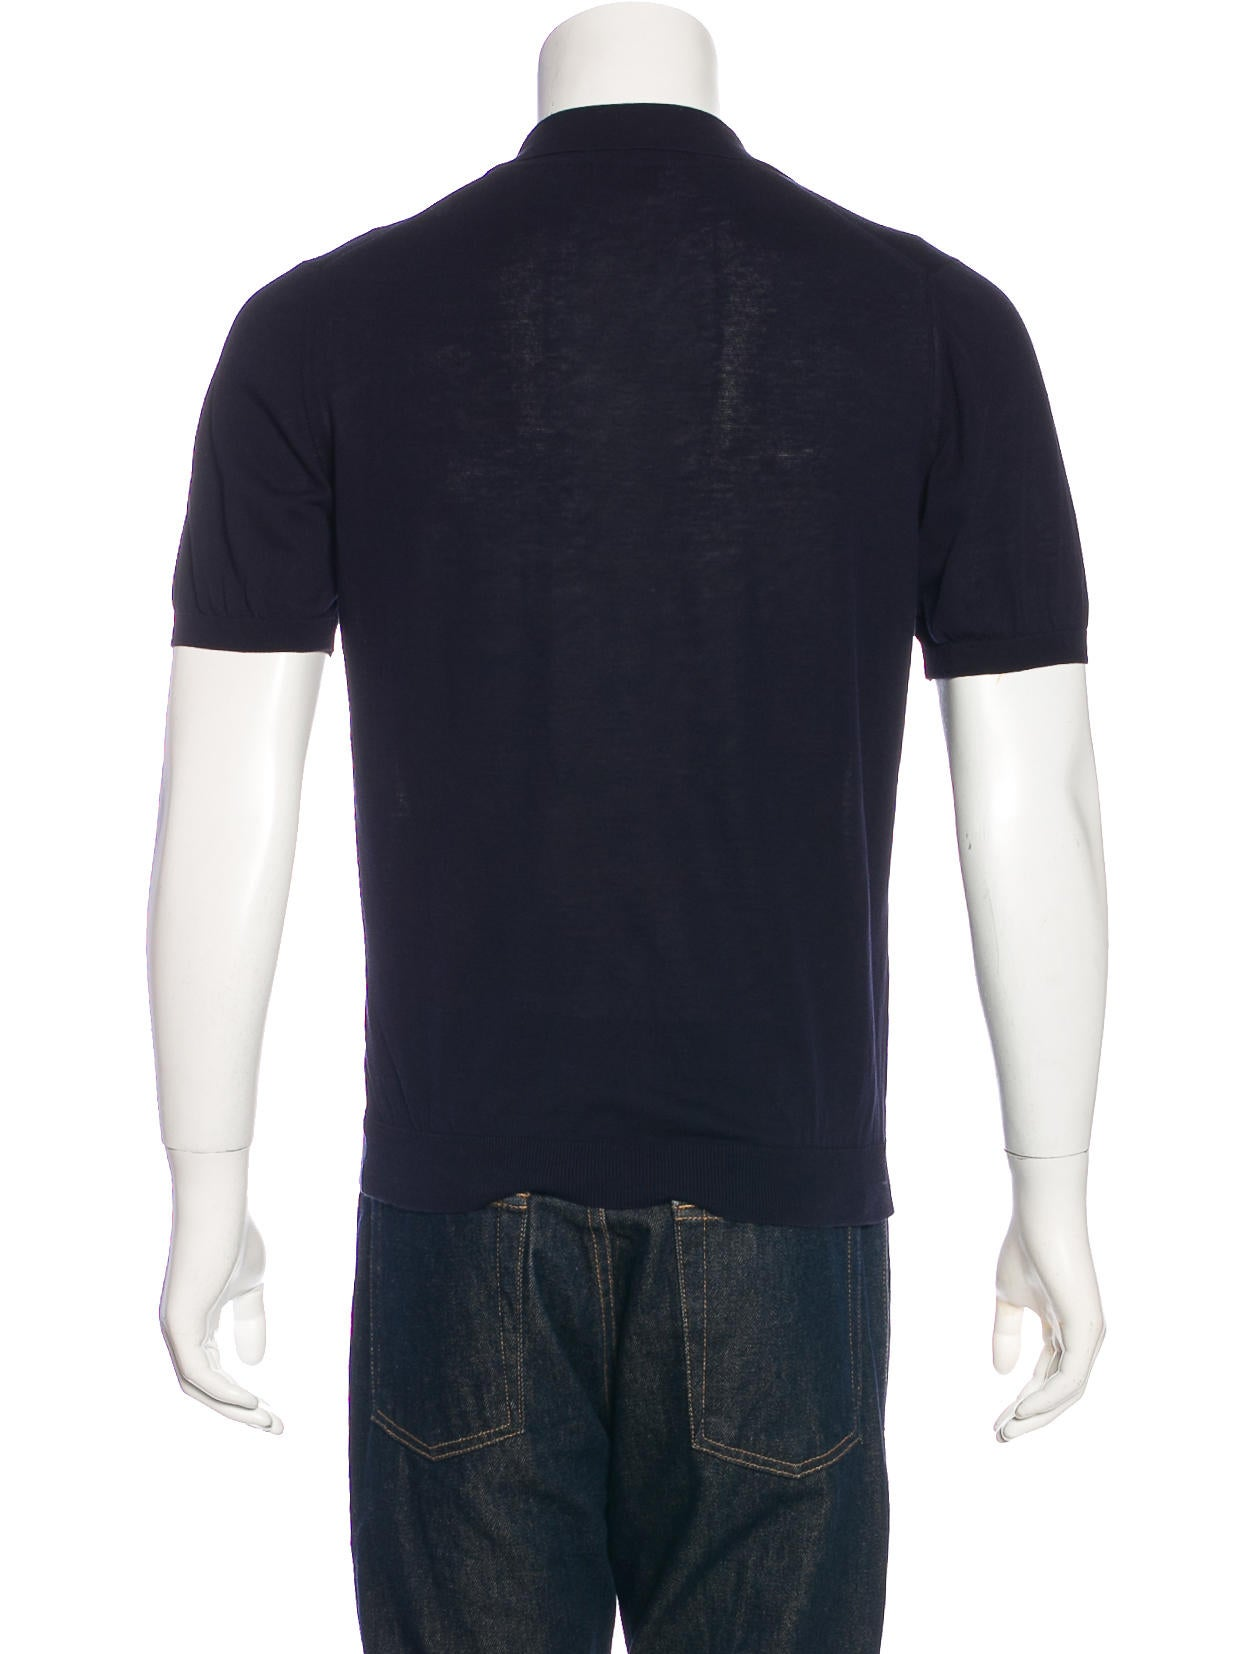 Men's Big & Tall Short Sleeve Jersey Knit Polo Shirt. from $ 16 95 Prime. out of 5 stars Faded Glory. Men's Long Sleeve Waffle Knit Thermal Henley Top/Shirt. from $ 9 97 Prime. out of 5 stars Wolverine. Men's Walden Long Sleeve Blended Thermal 3 Button Henley Shirt. from $ 12 48 Prime.